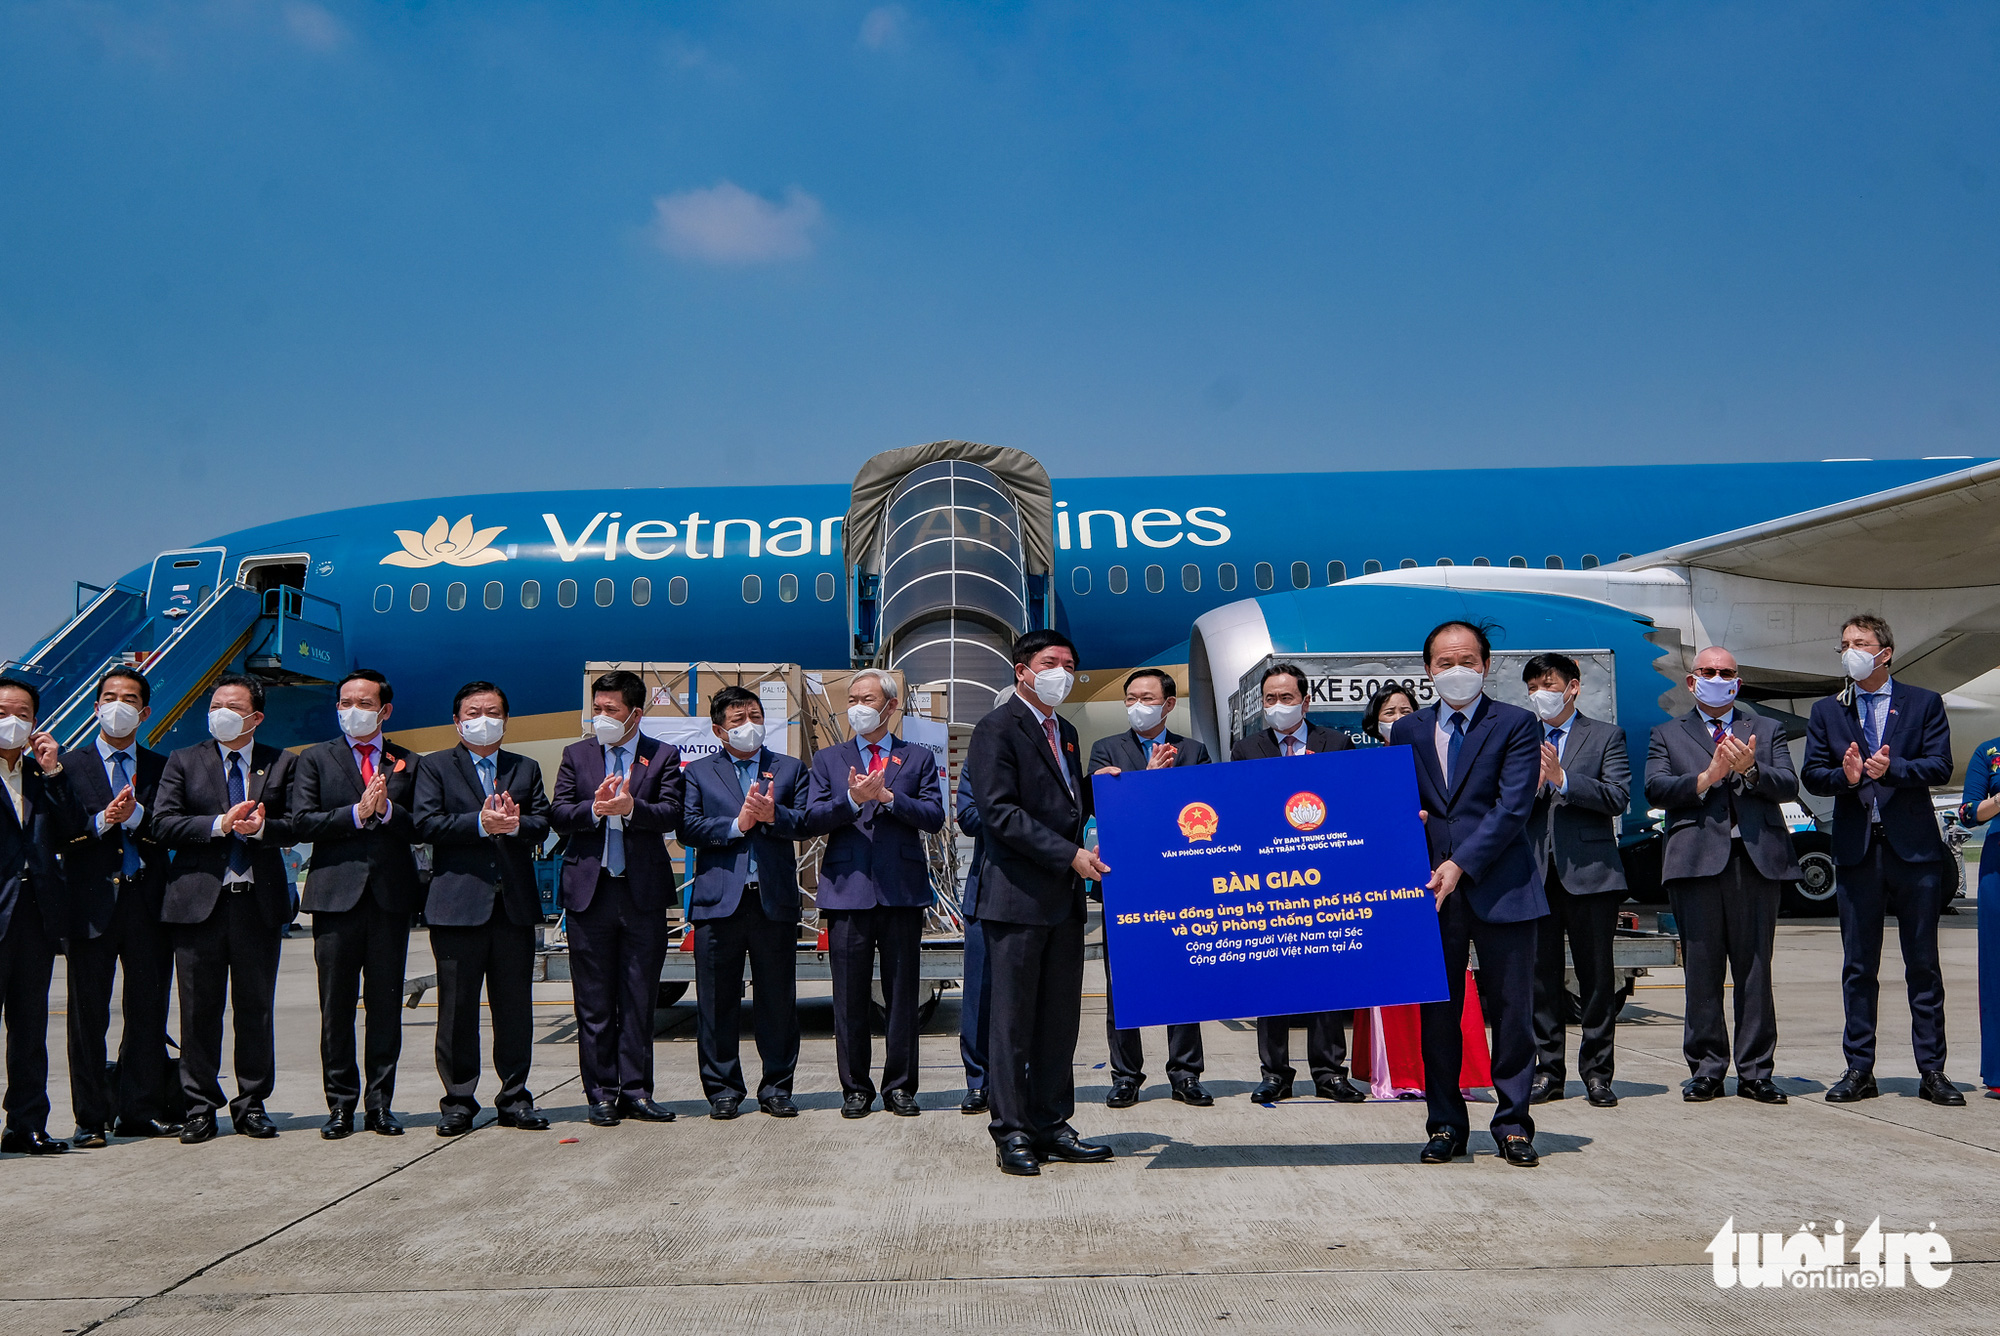 The National Assembly hand over the financial assistance to the VietnamFatherland Front during a ceremony at Noi Bai International Airport in Hanoi, September 12, 2021. Photo: Nam Tran / Tuoi Tre